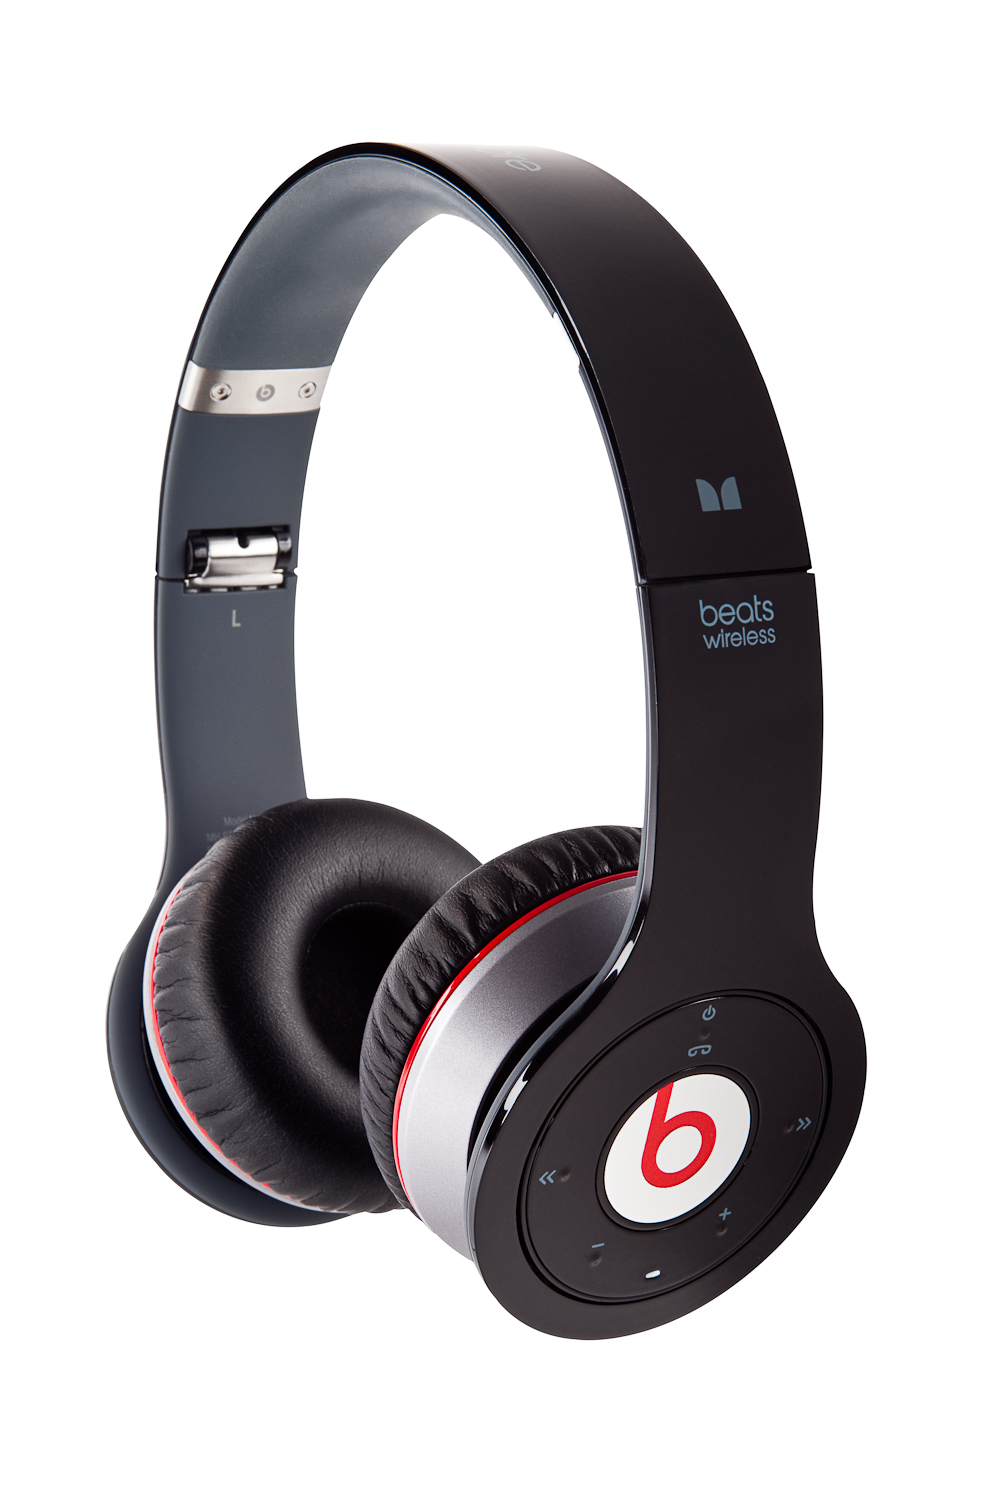 new beats by dre monster headphones are wireless colorful. Black Bedroom Furniture Sets. Home Design Ideas